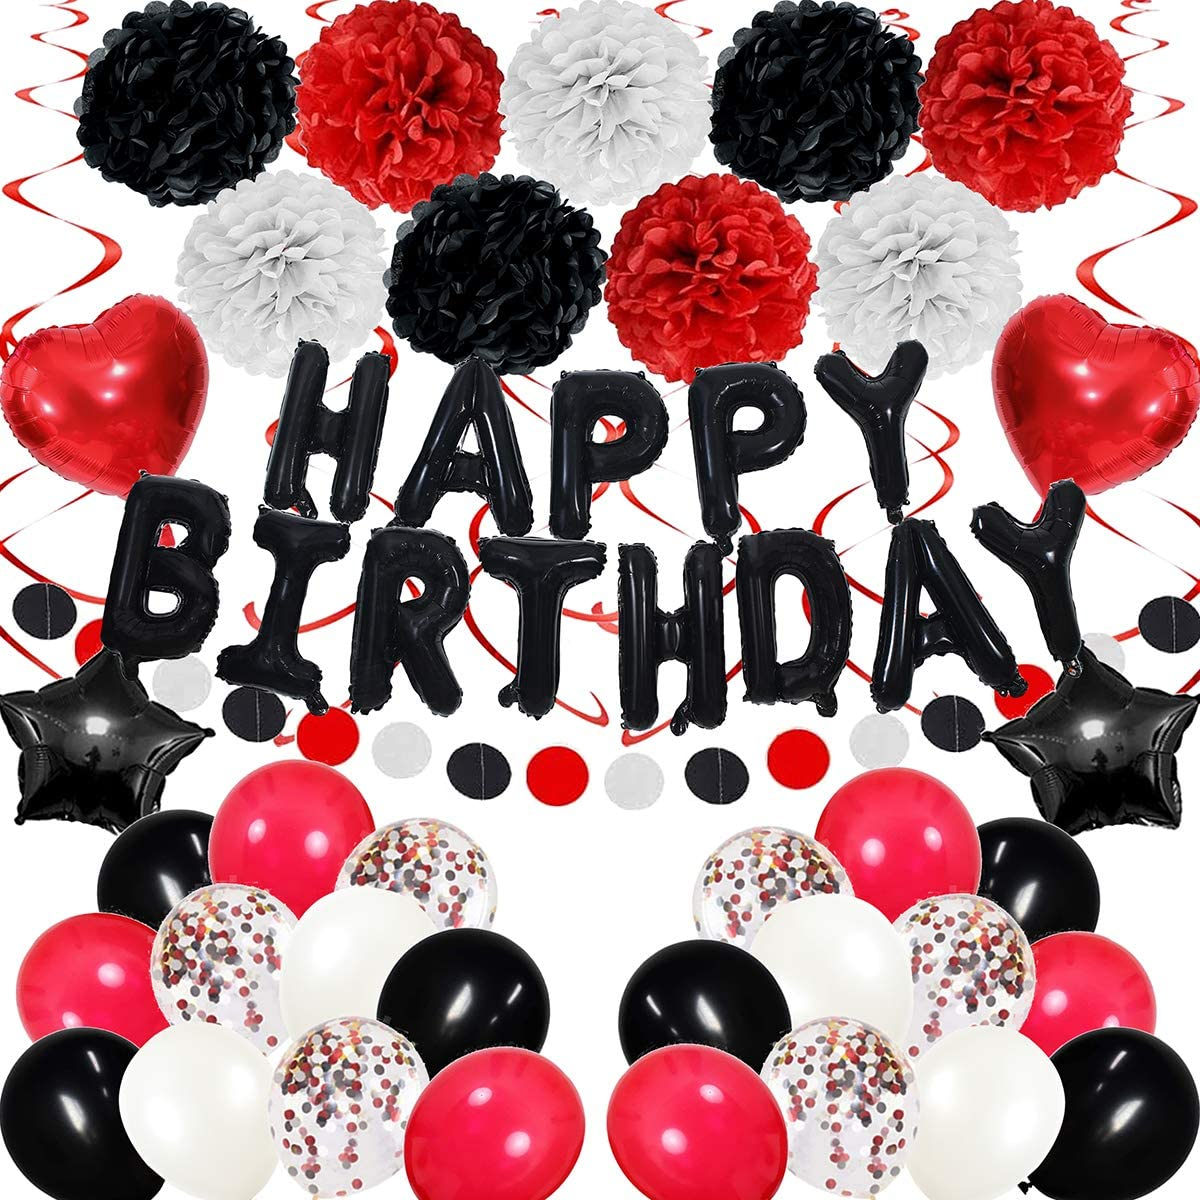 Black White and Red Birthday Decorations 47 Pieces balloon kit with foil Balloons Suit for 1st 16th 18th 21th 30th 35th 40th 50th 60th 70th, Men Women Boys Grils Black White Red Birthday Party,Casino Poker Card party ,Casino Las Vegas Themed Party